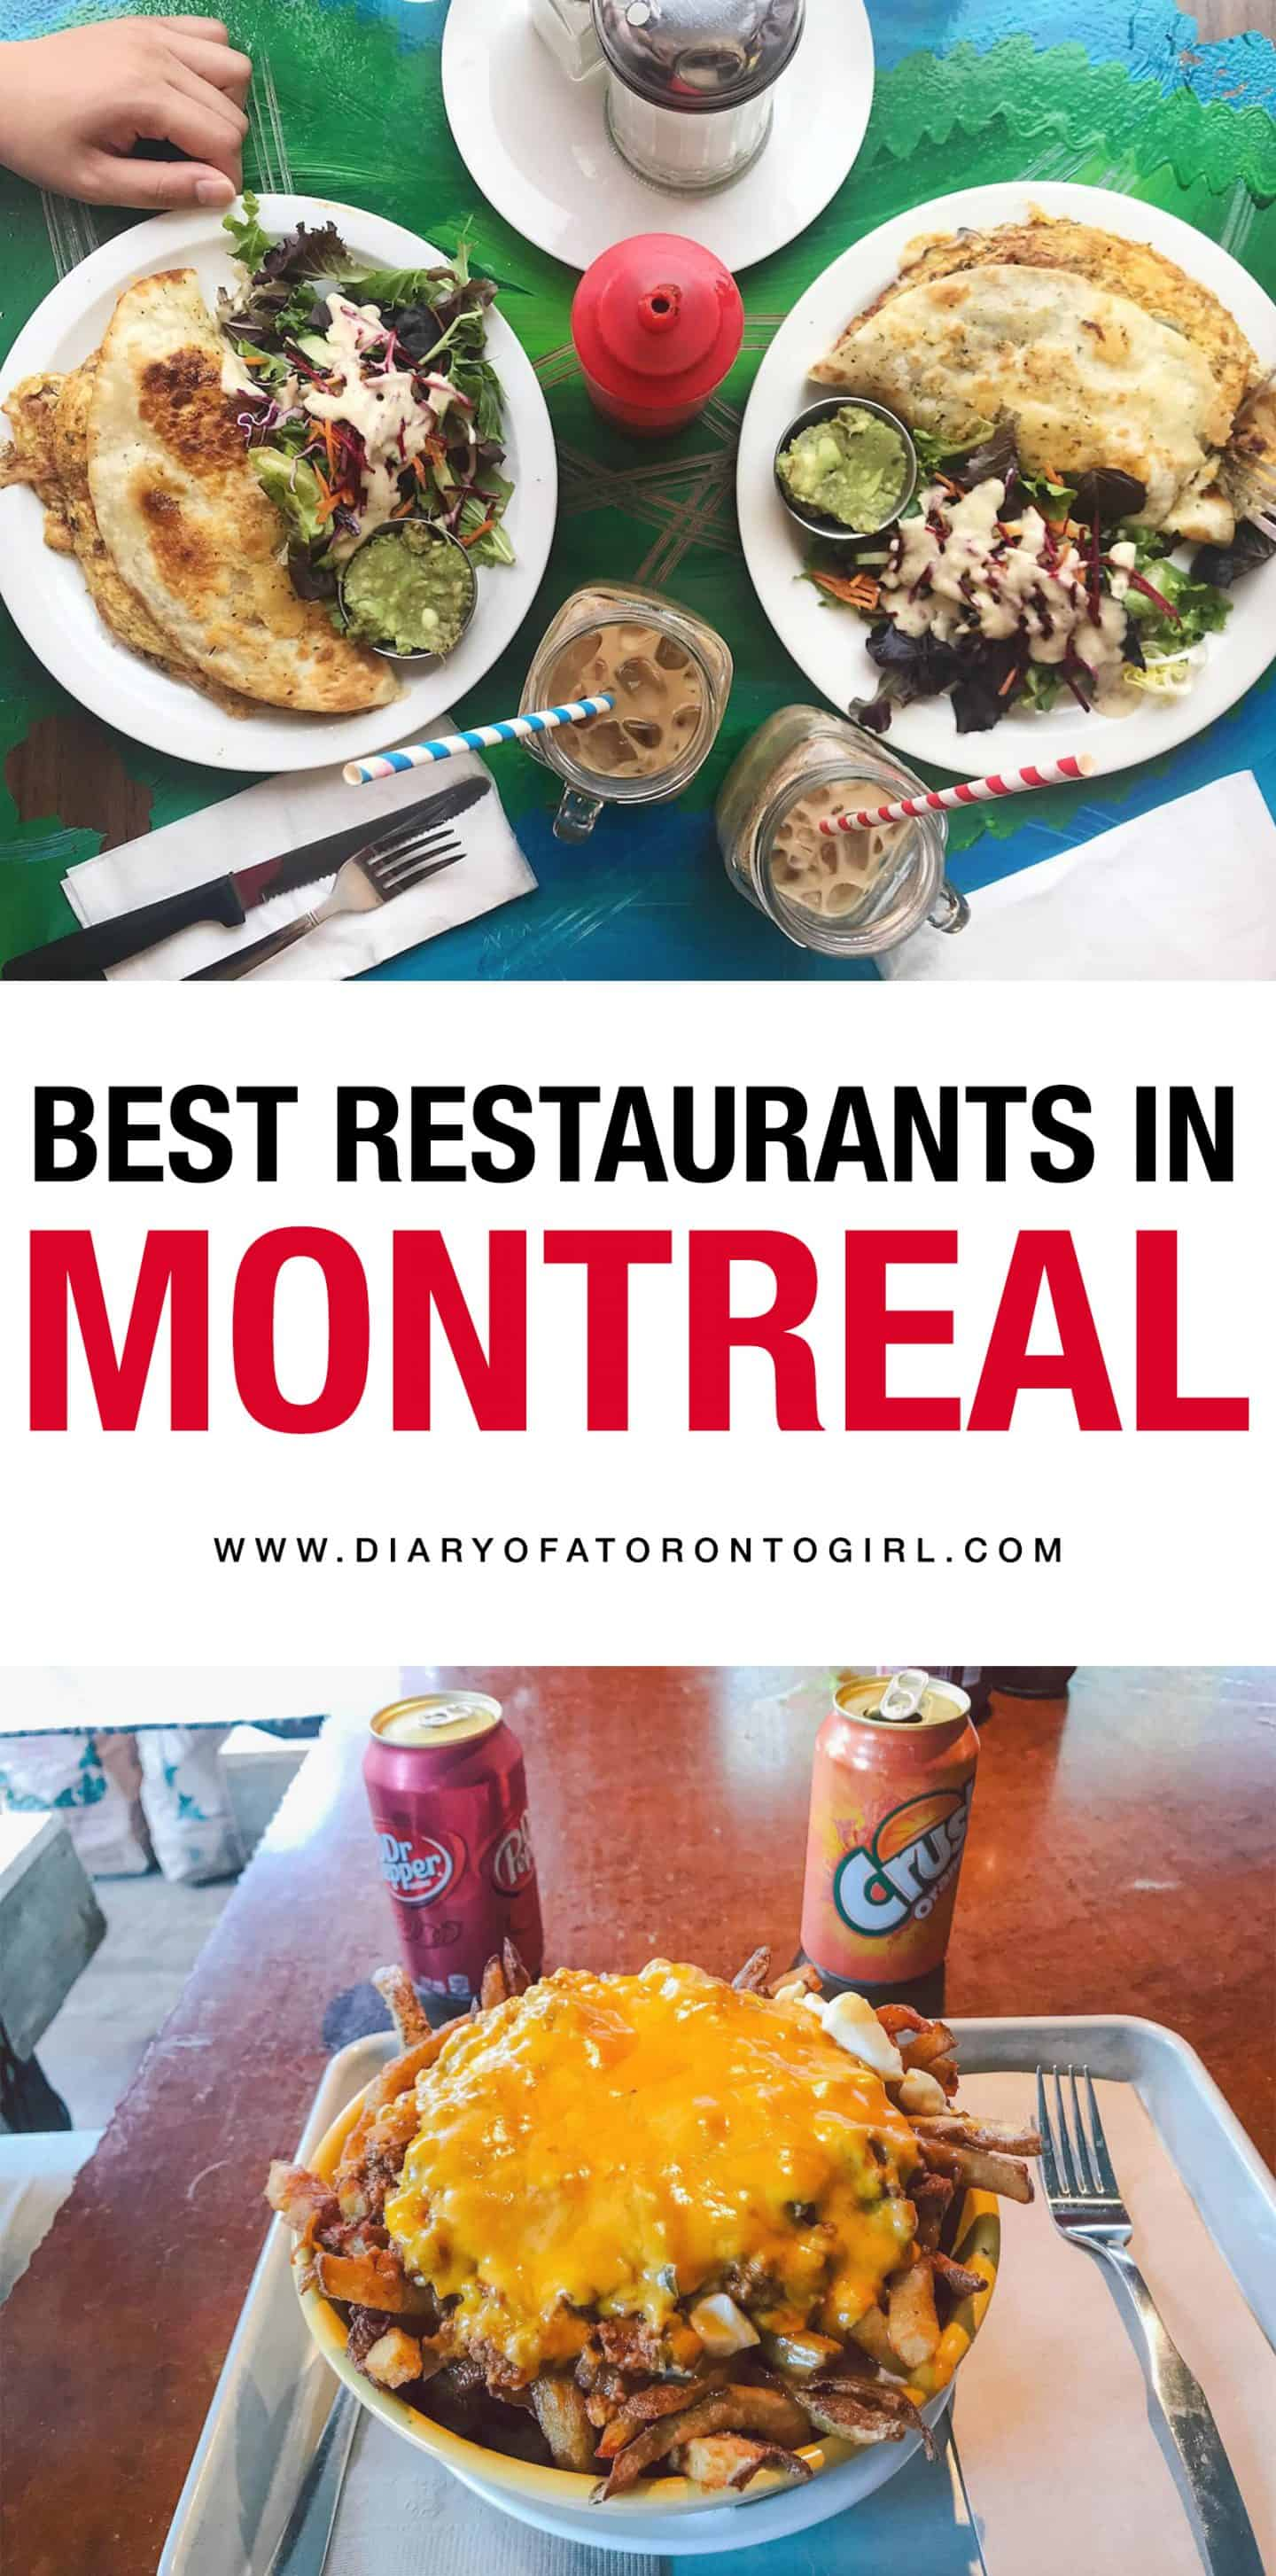 Montreal is filled with amazing brunch spots, delicious ice cream places, and incredible restaurants. Here's where to eat and drink in Montreal, Quebec!